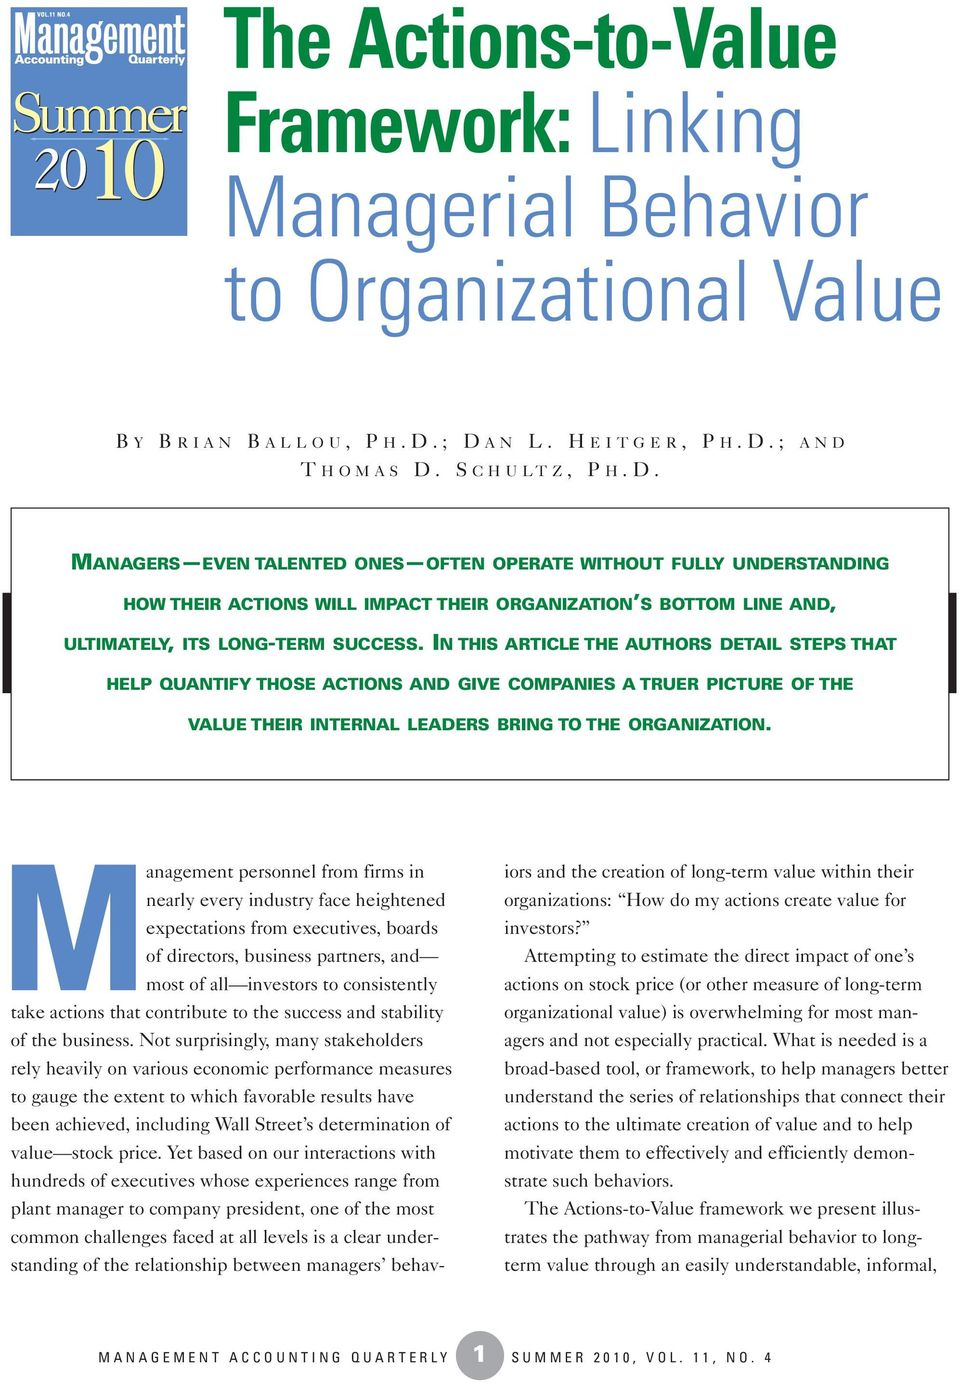 IN THIS ARTICLE THE AUTHORS DETAIL STEPS THAT HELP QUANTIFY THOSE ACTIONS AND GIVE COMPANIES A TRUER PICTURE OF THE VALUE THEIR INTERNAL LEADERS BRING TO THE ORGANIZATION.